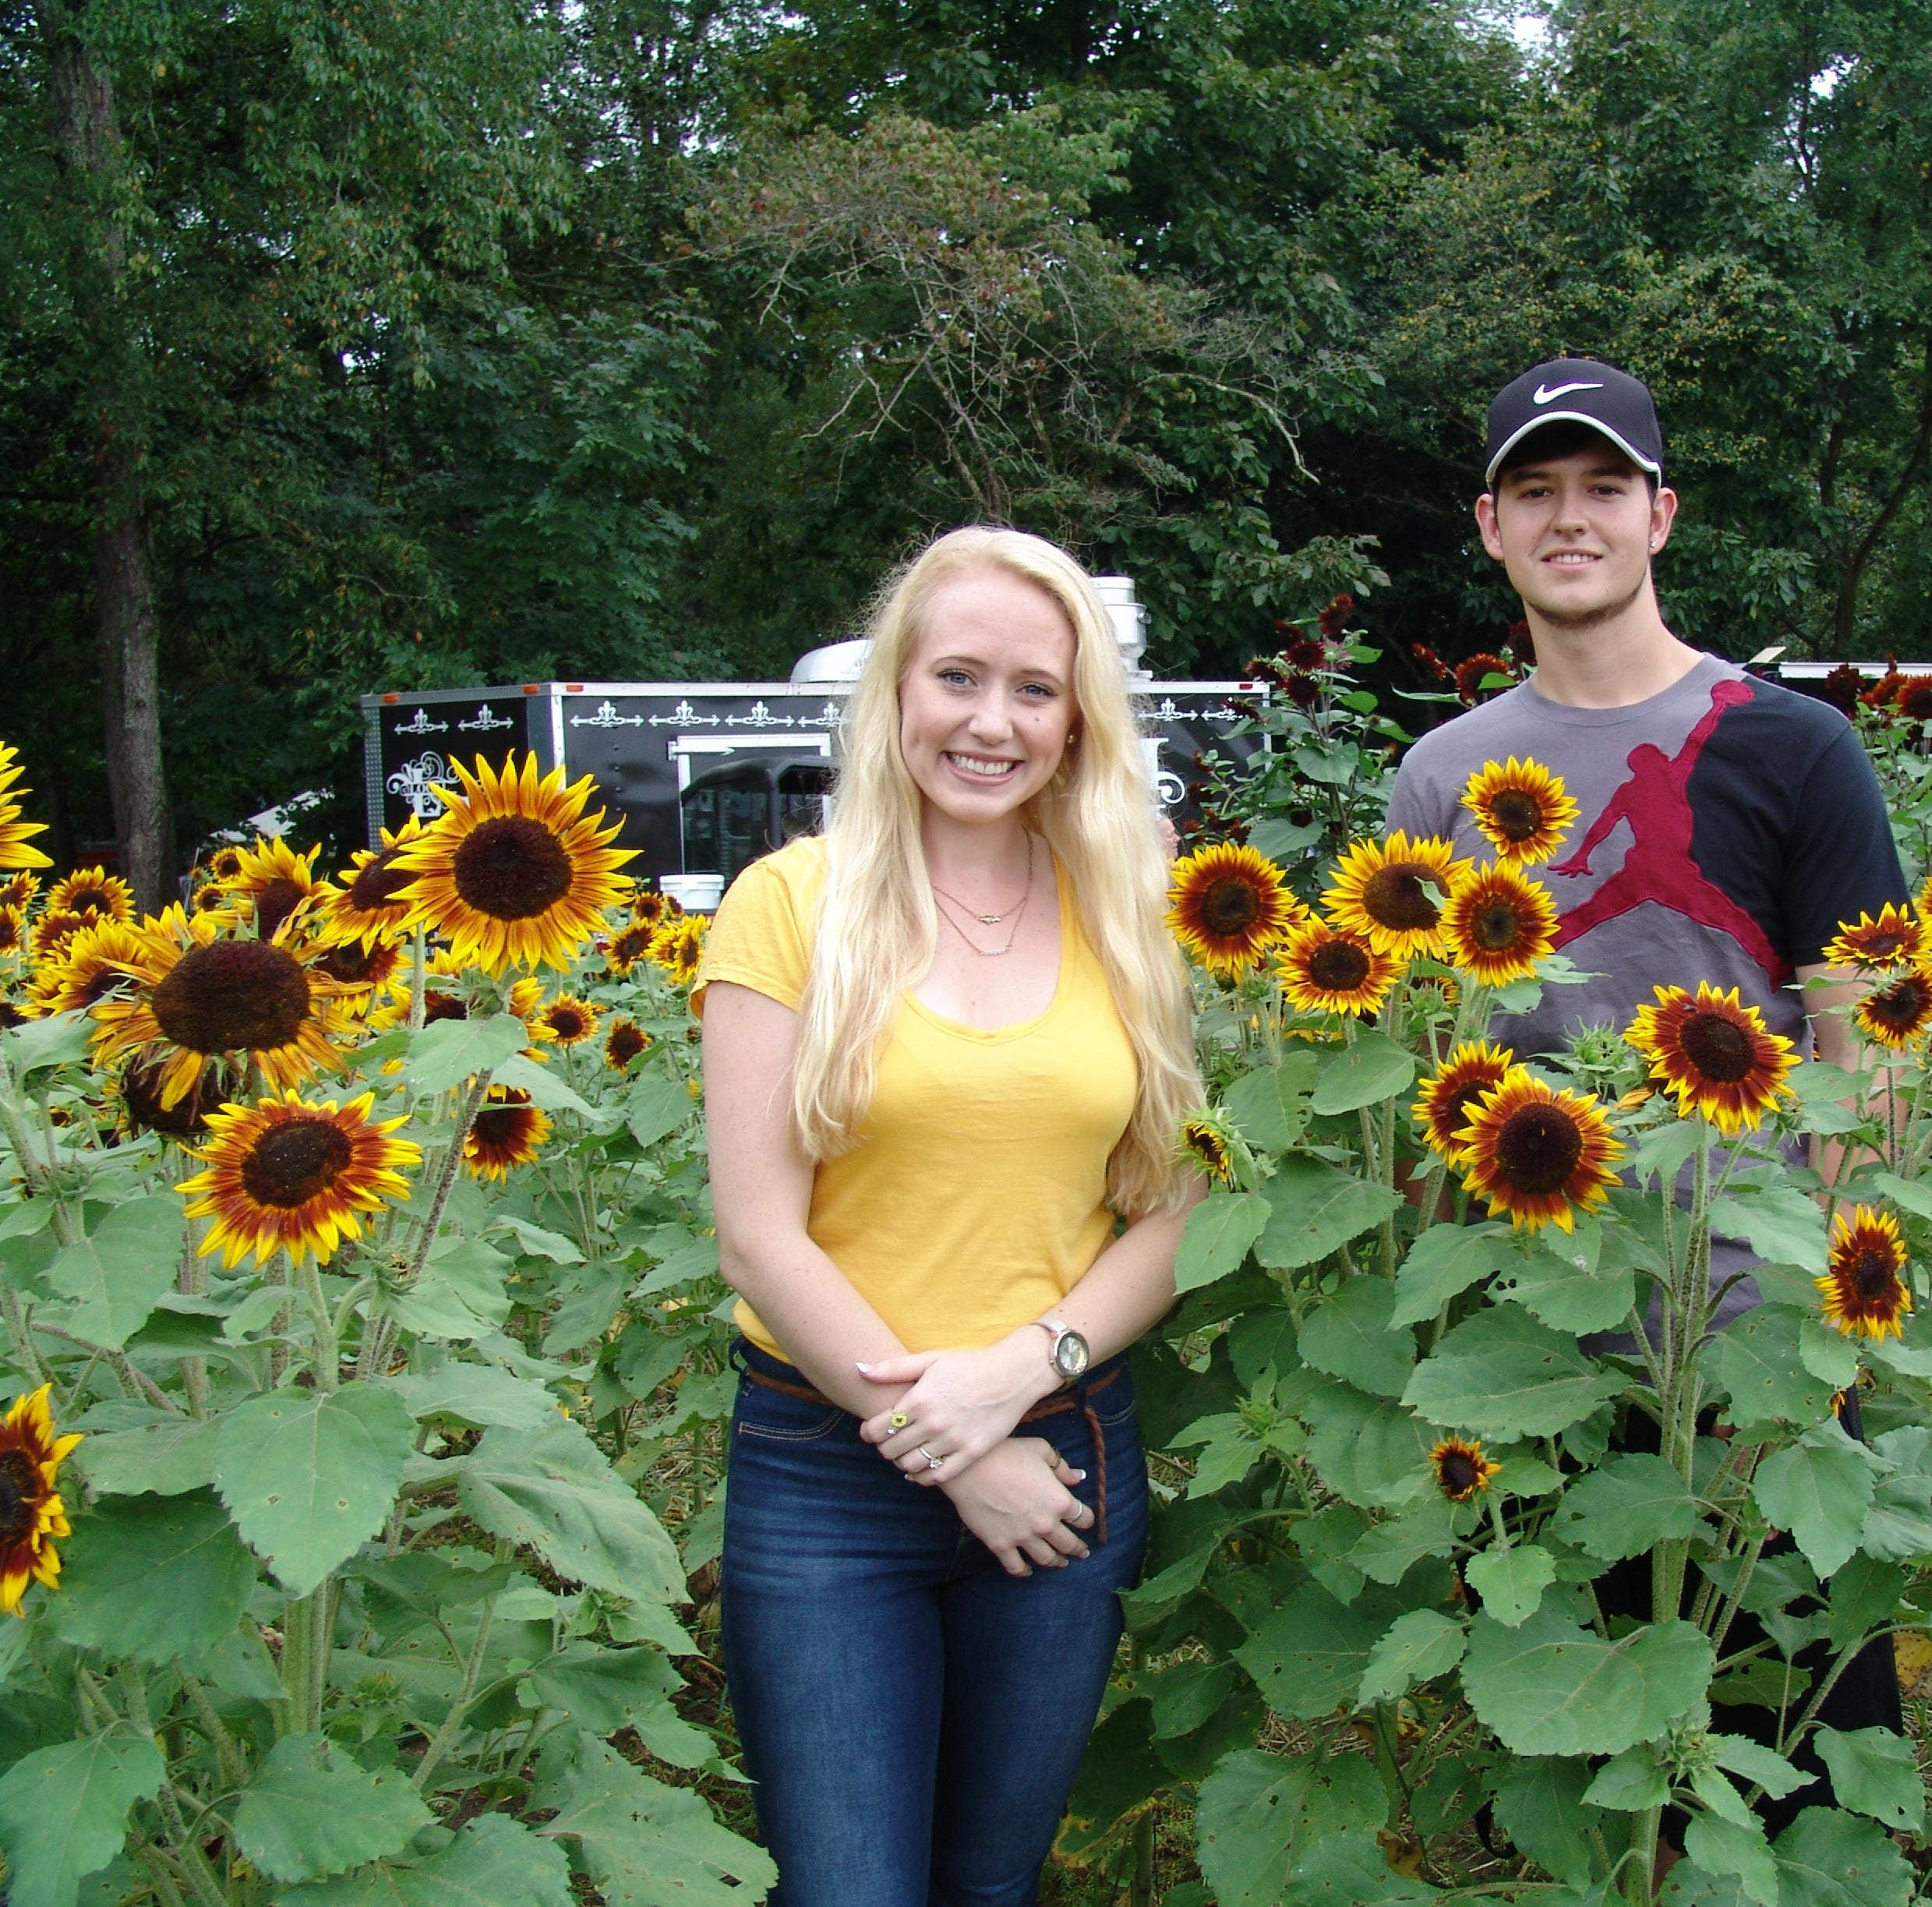 Weekend festival bloomed bright with sunflowers